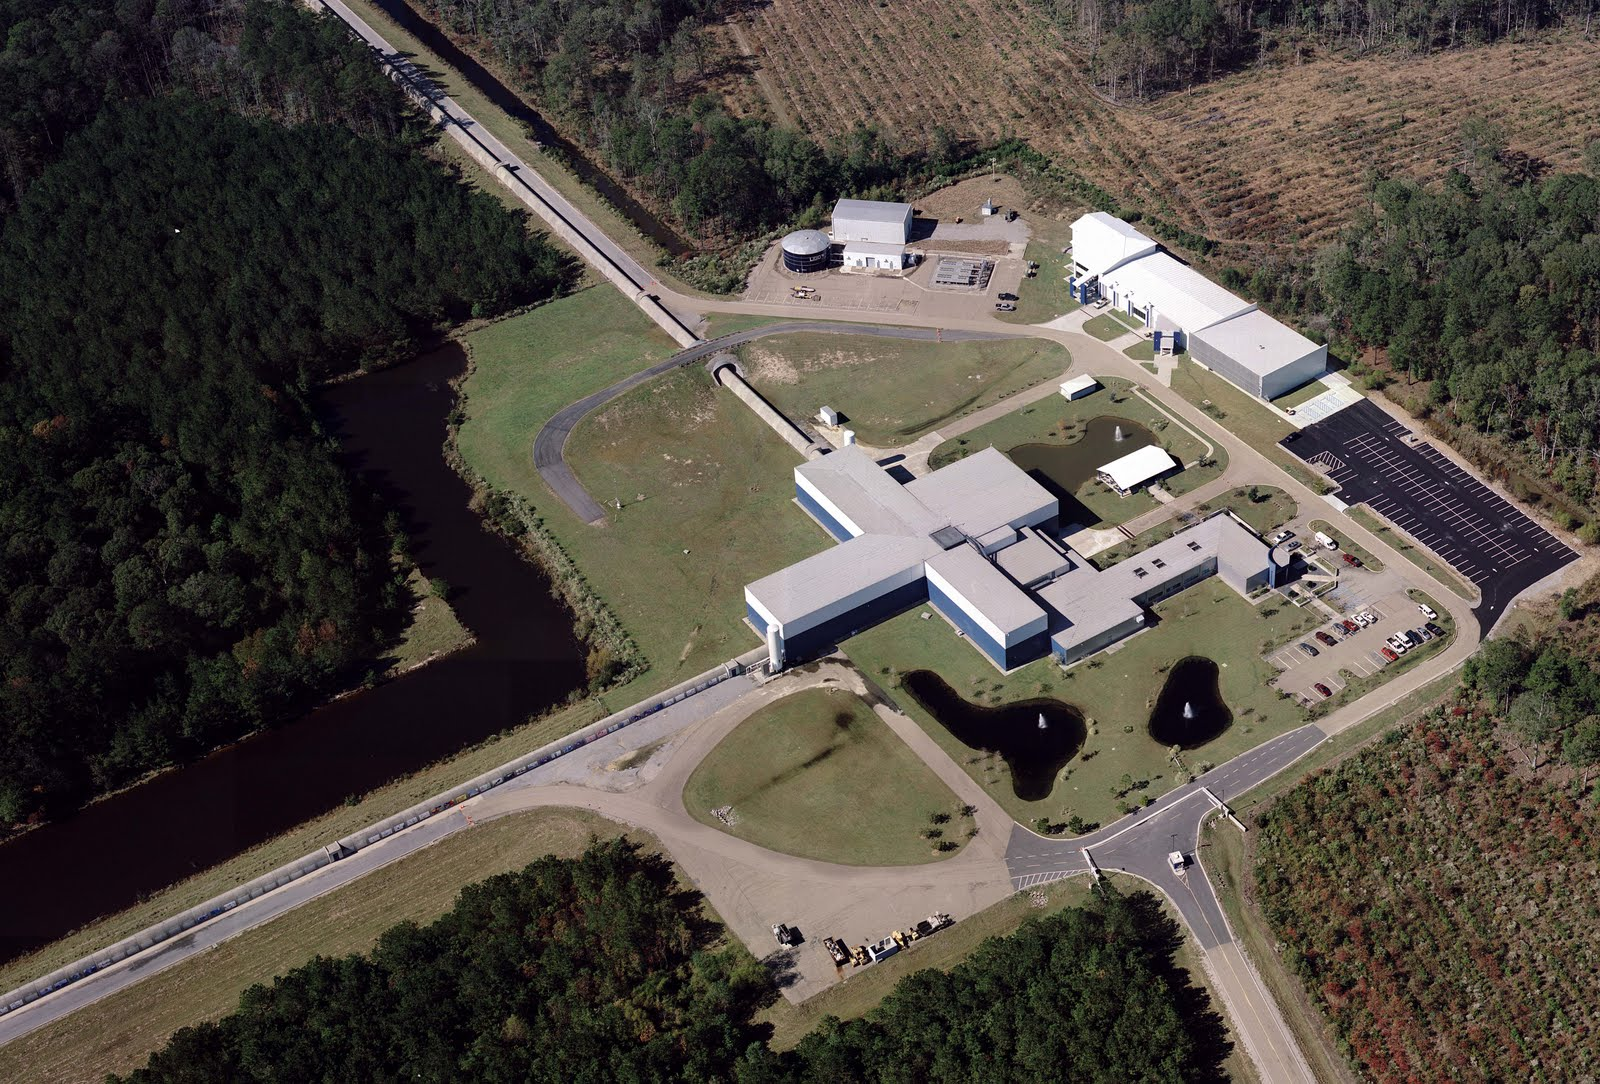 Advanced LIGO in Louisiana. Thorne championed the project to detect gravitational waves from cosmic events such as colliding black holes. LIGO's second phase of observations begins this summer.